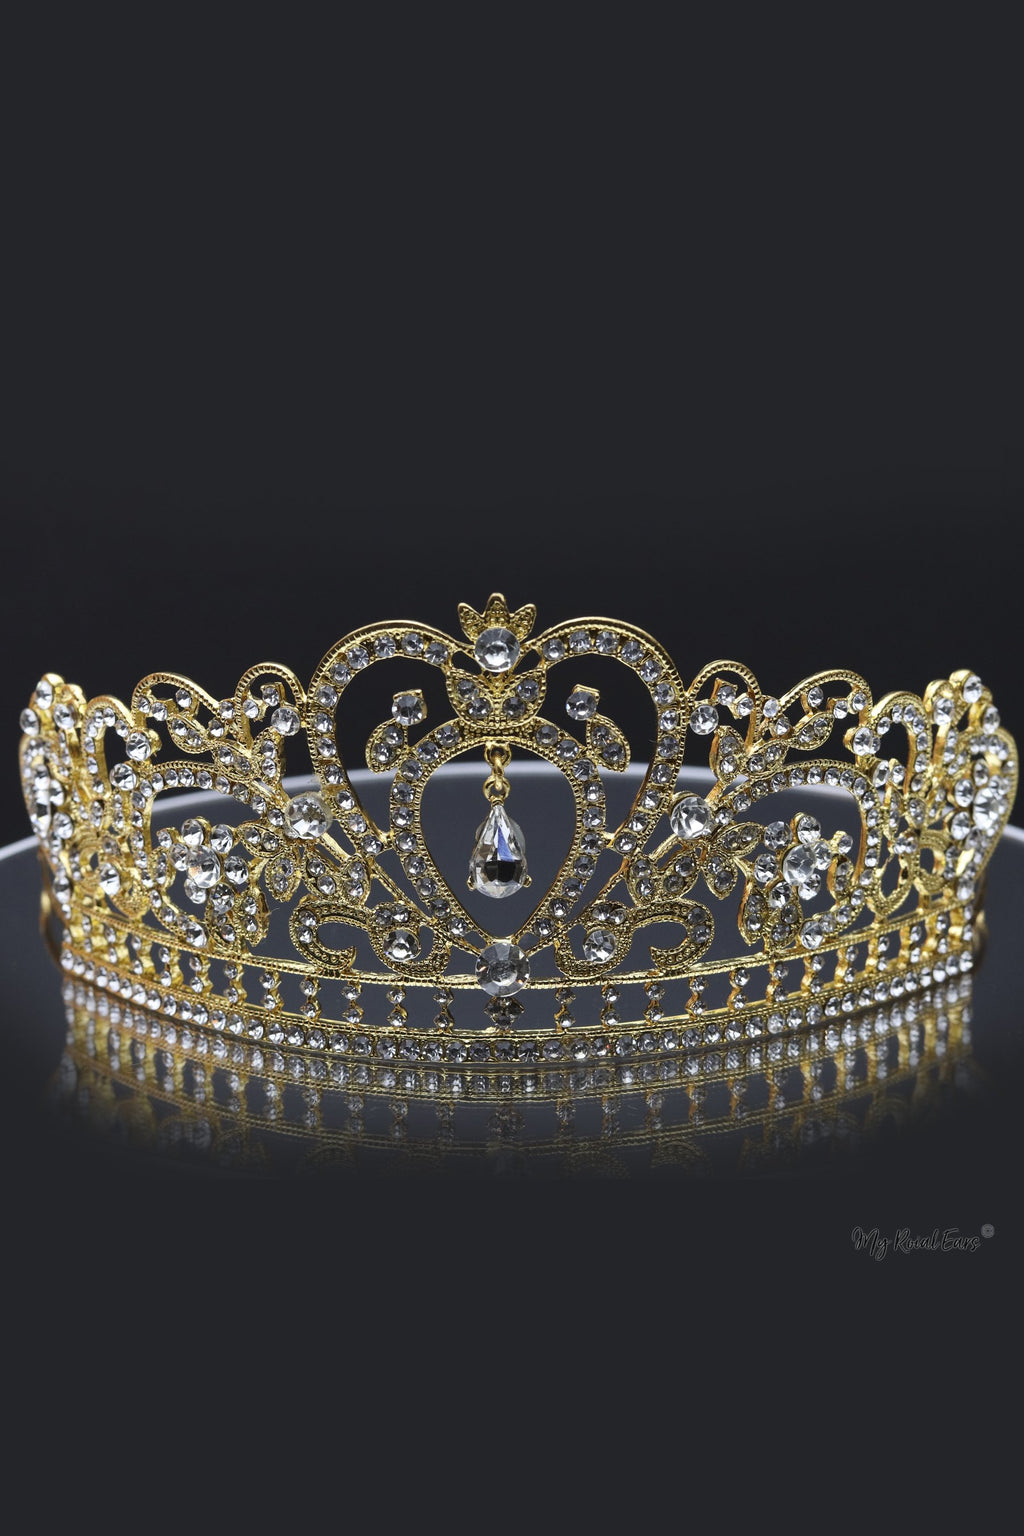 Queen Shirin- sophisticated dangling tiara - My Roial Ears LTD